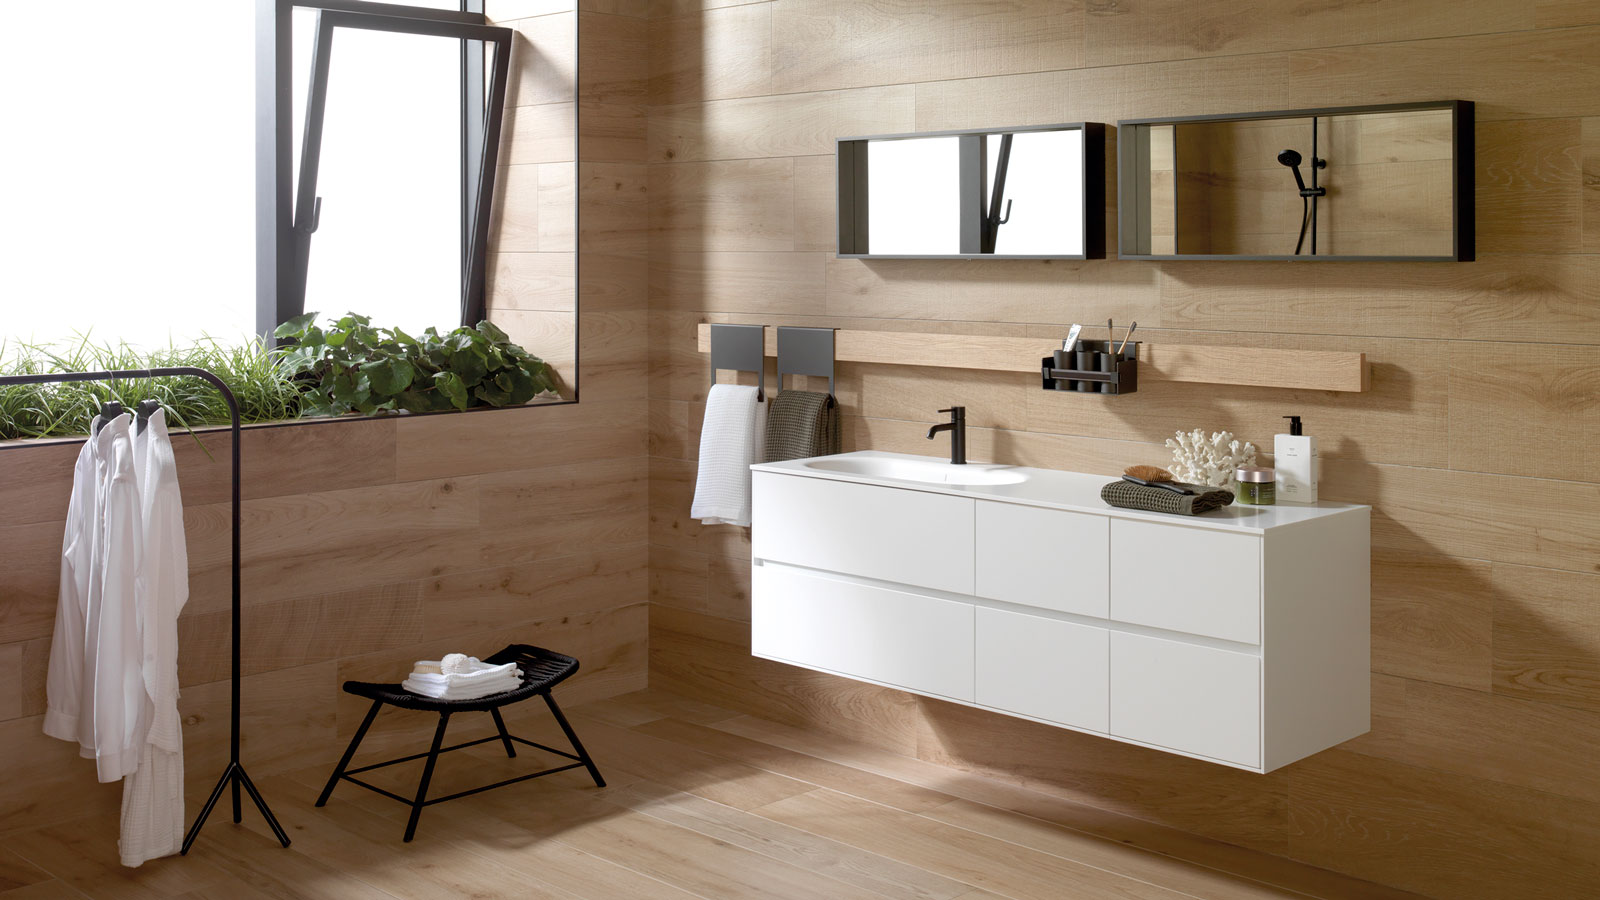 PORCELANOSA Virtual Exhibition: Gamadecor presents its new solutions for kitchens and bathrooms with a focus on minimalism and sustainability